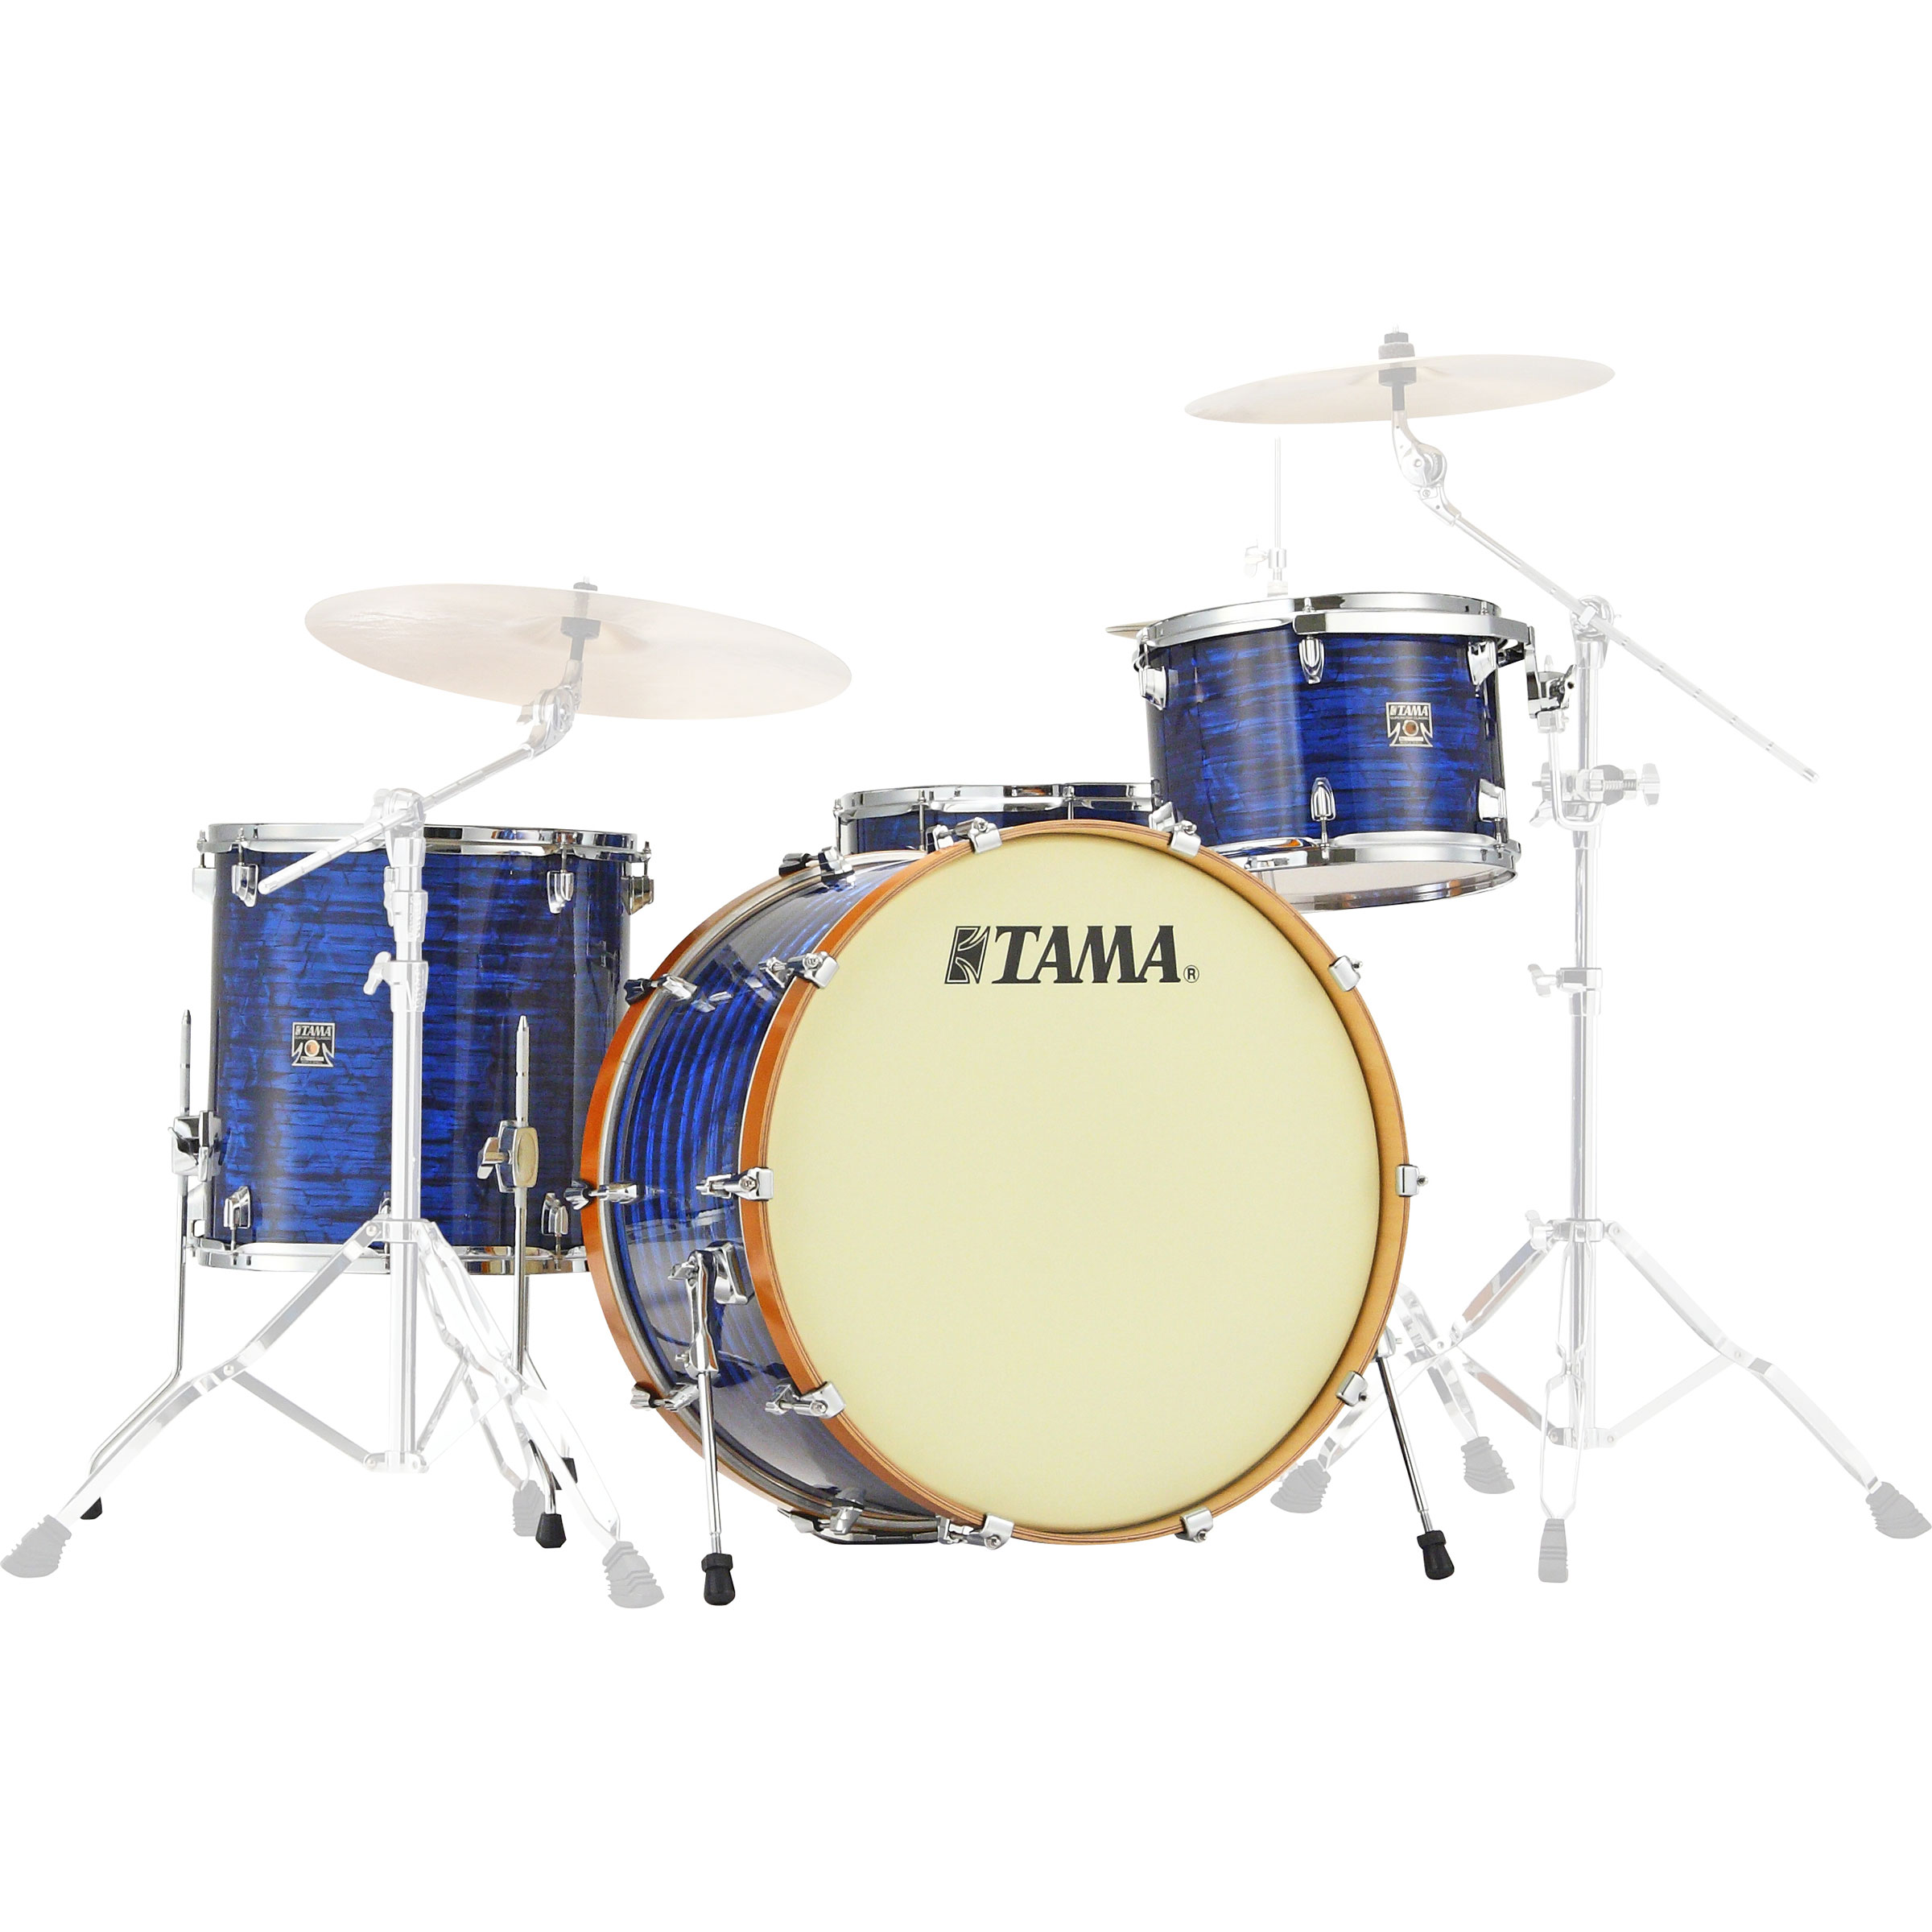 """Tama Superstar Classic Maple Limited Edition 4-Piece Drum Set Shell Pack (24"""" Bass, 13/16"""" Toms, 14"""" Snare) in Blue Onyx"""